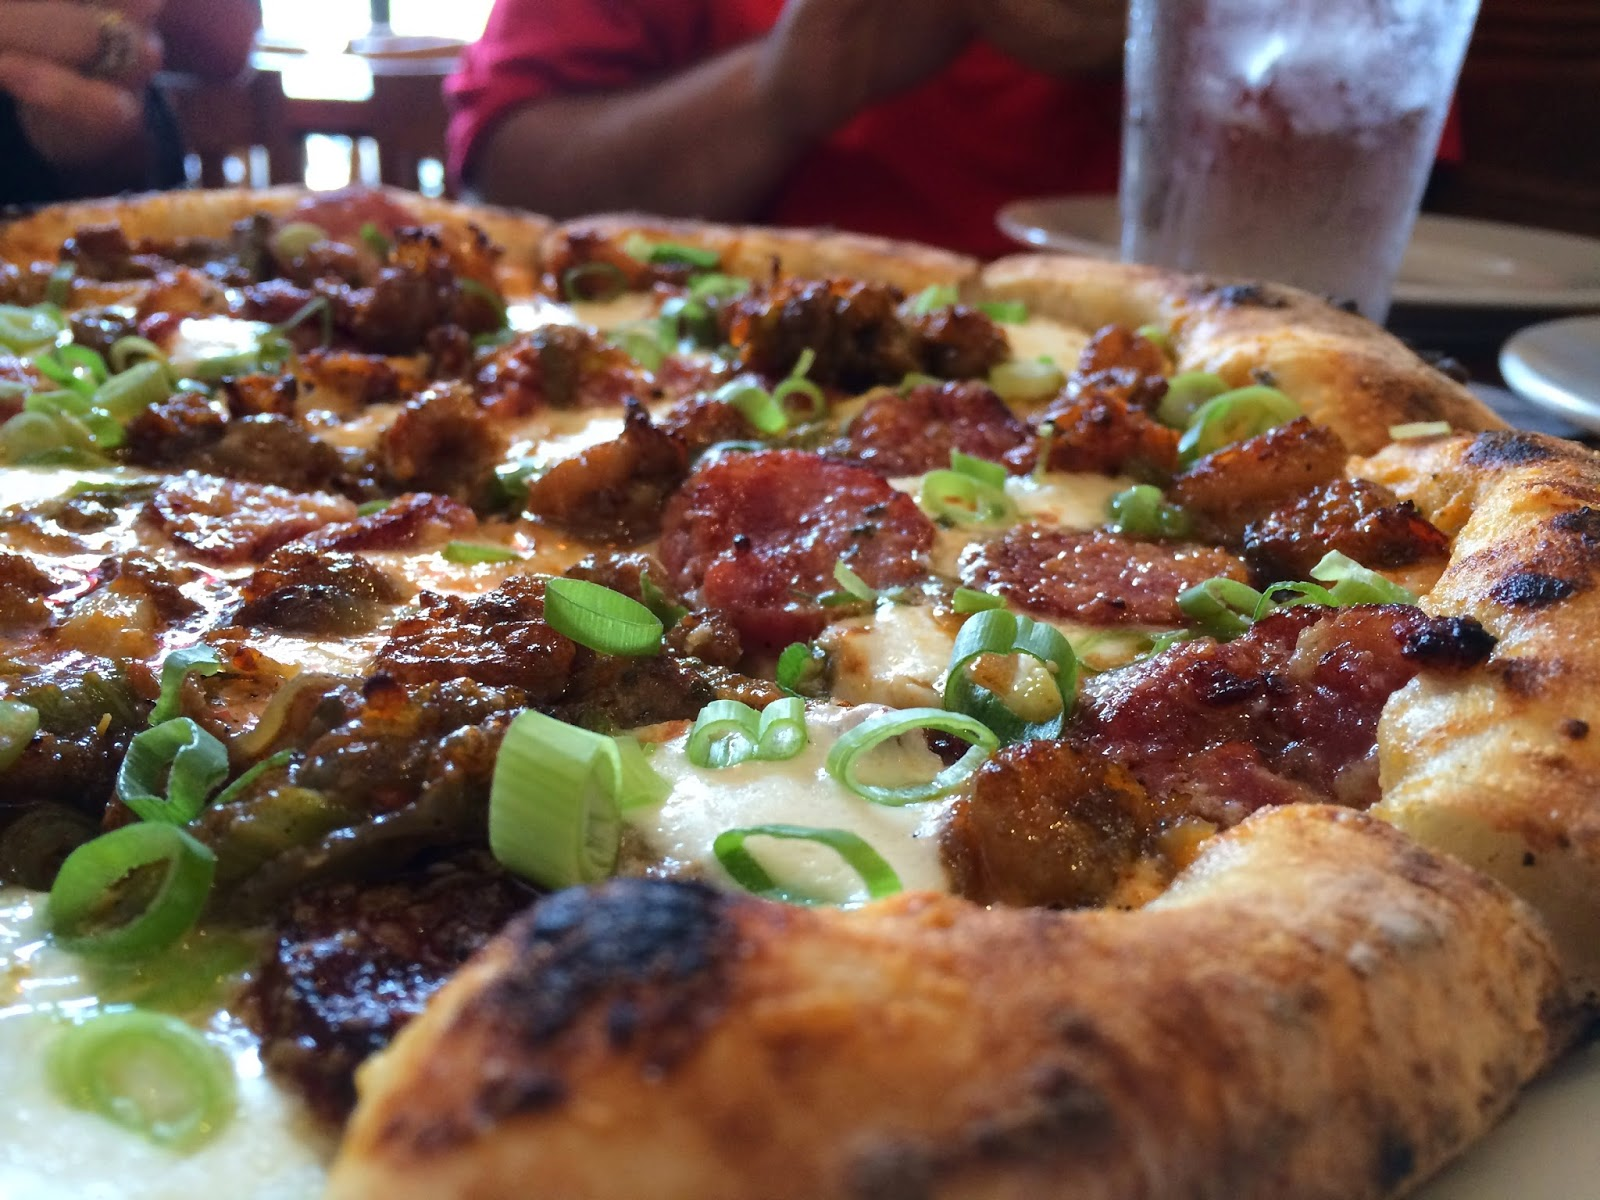 The Crawfish Lagniappe Pizza